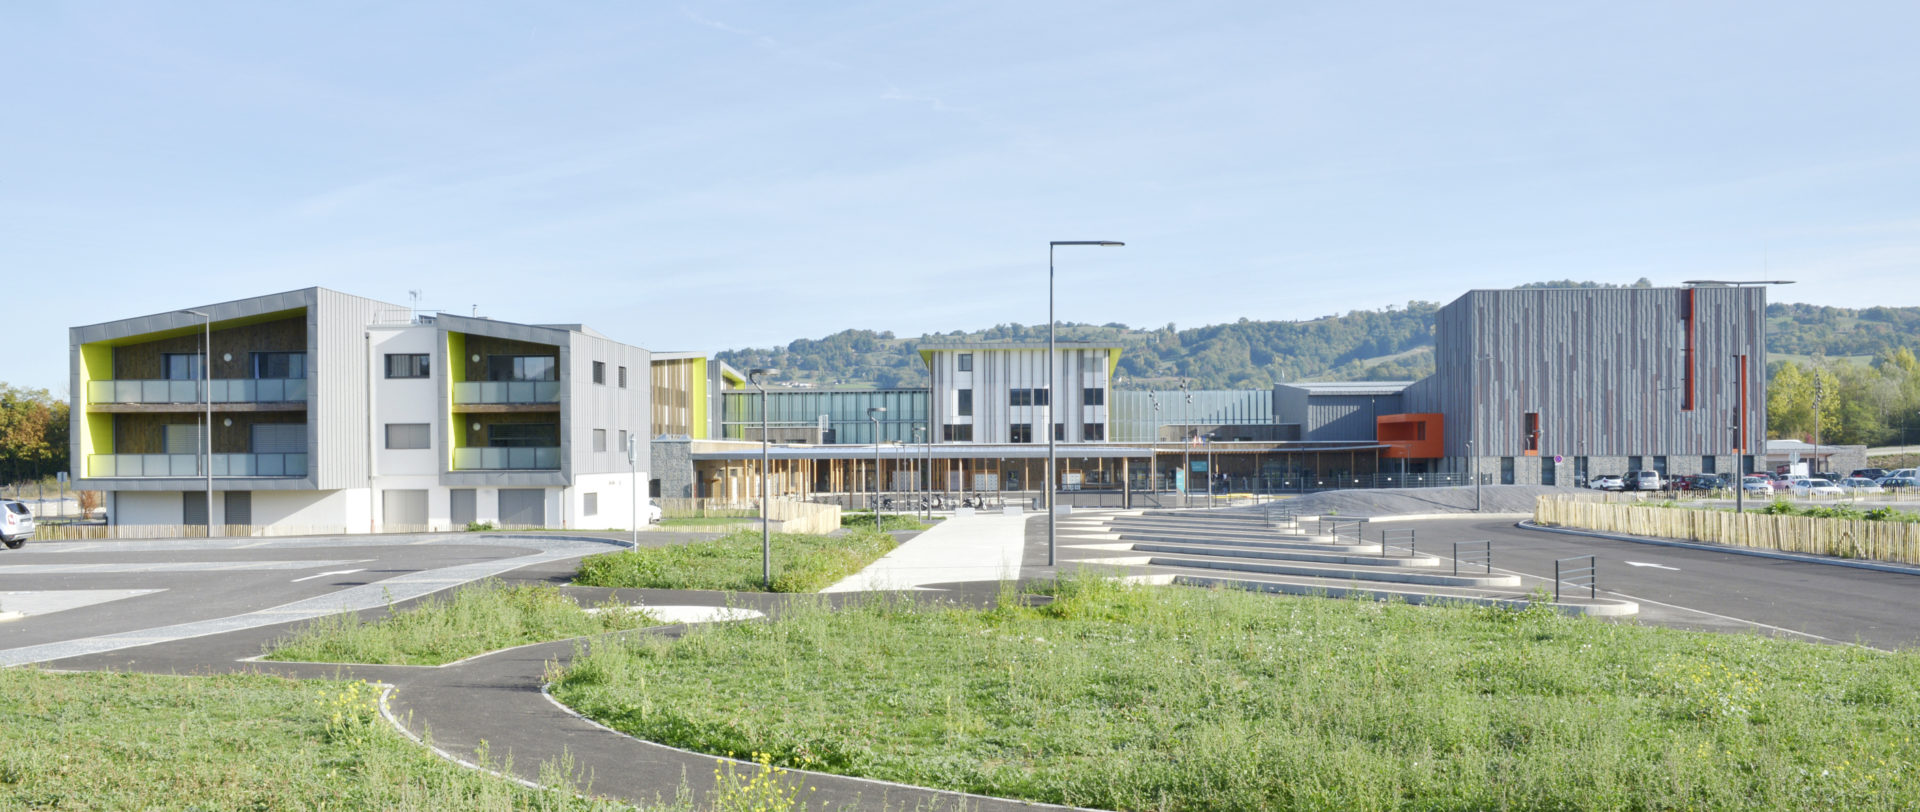 Complexe Sportif Bois Paille Passif Rumilly 74 Aer Architecte